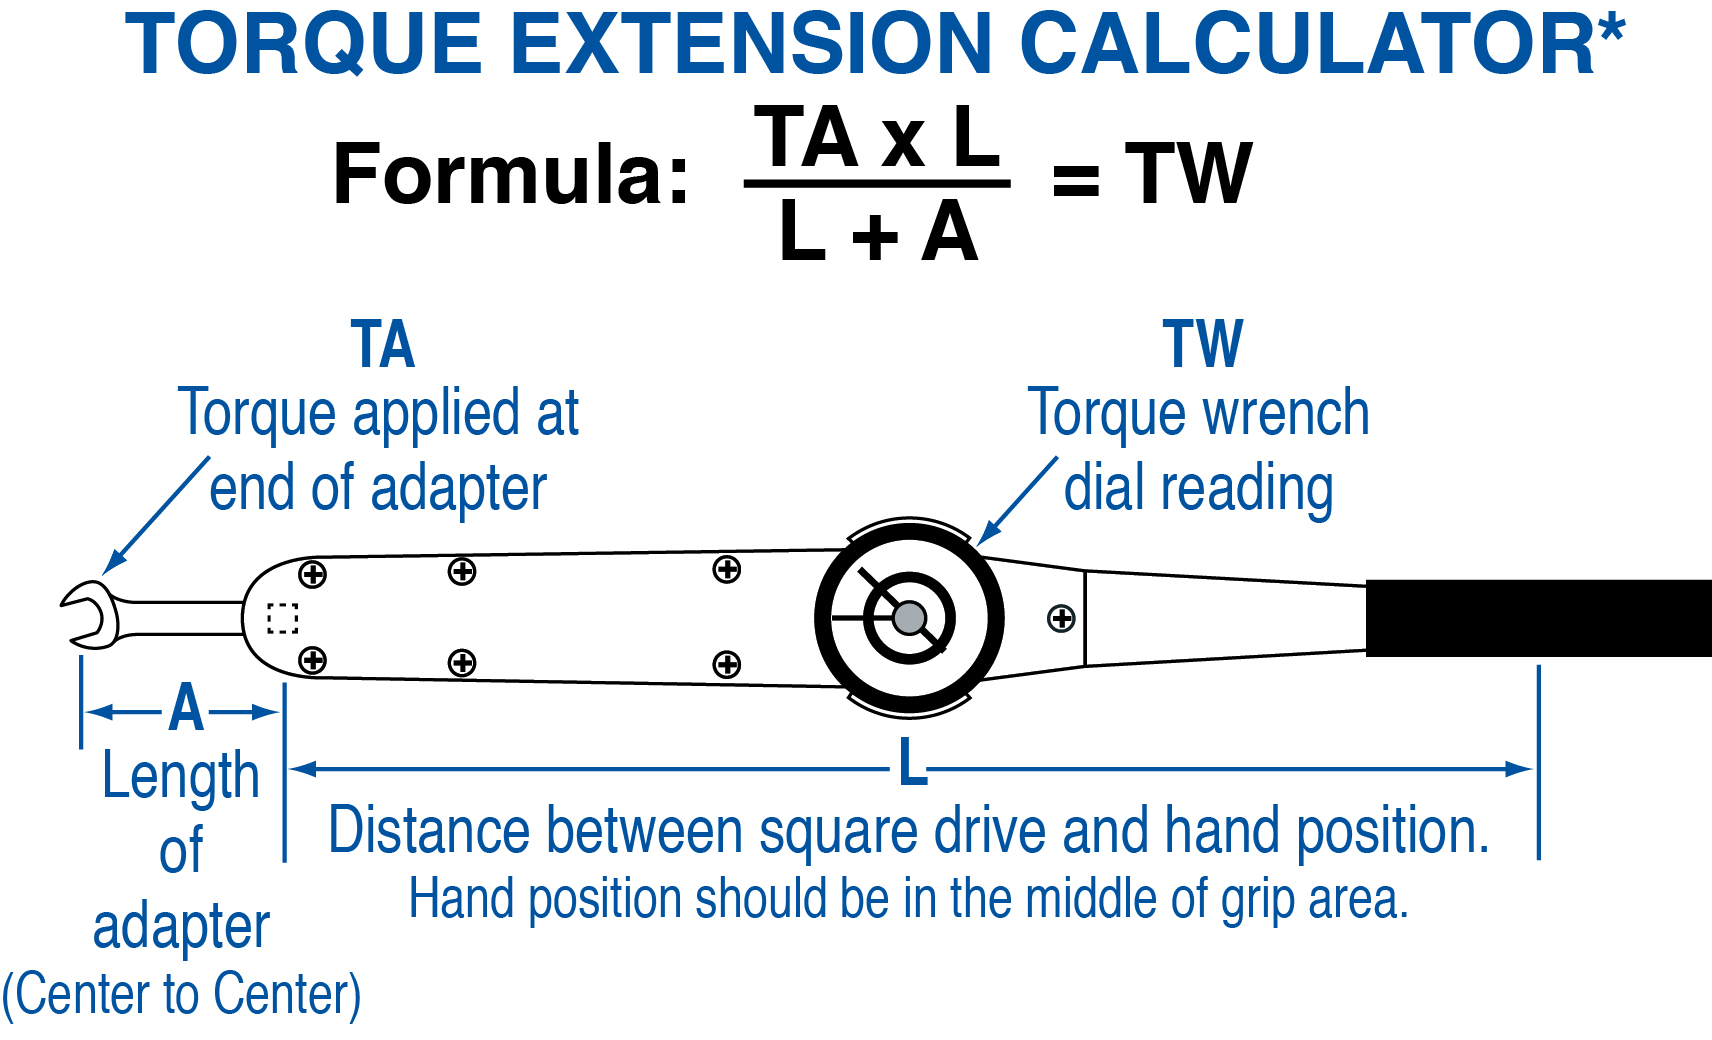 Torque Extension Calculator